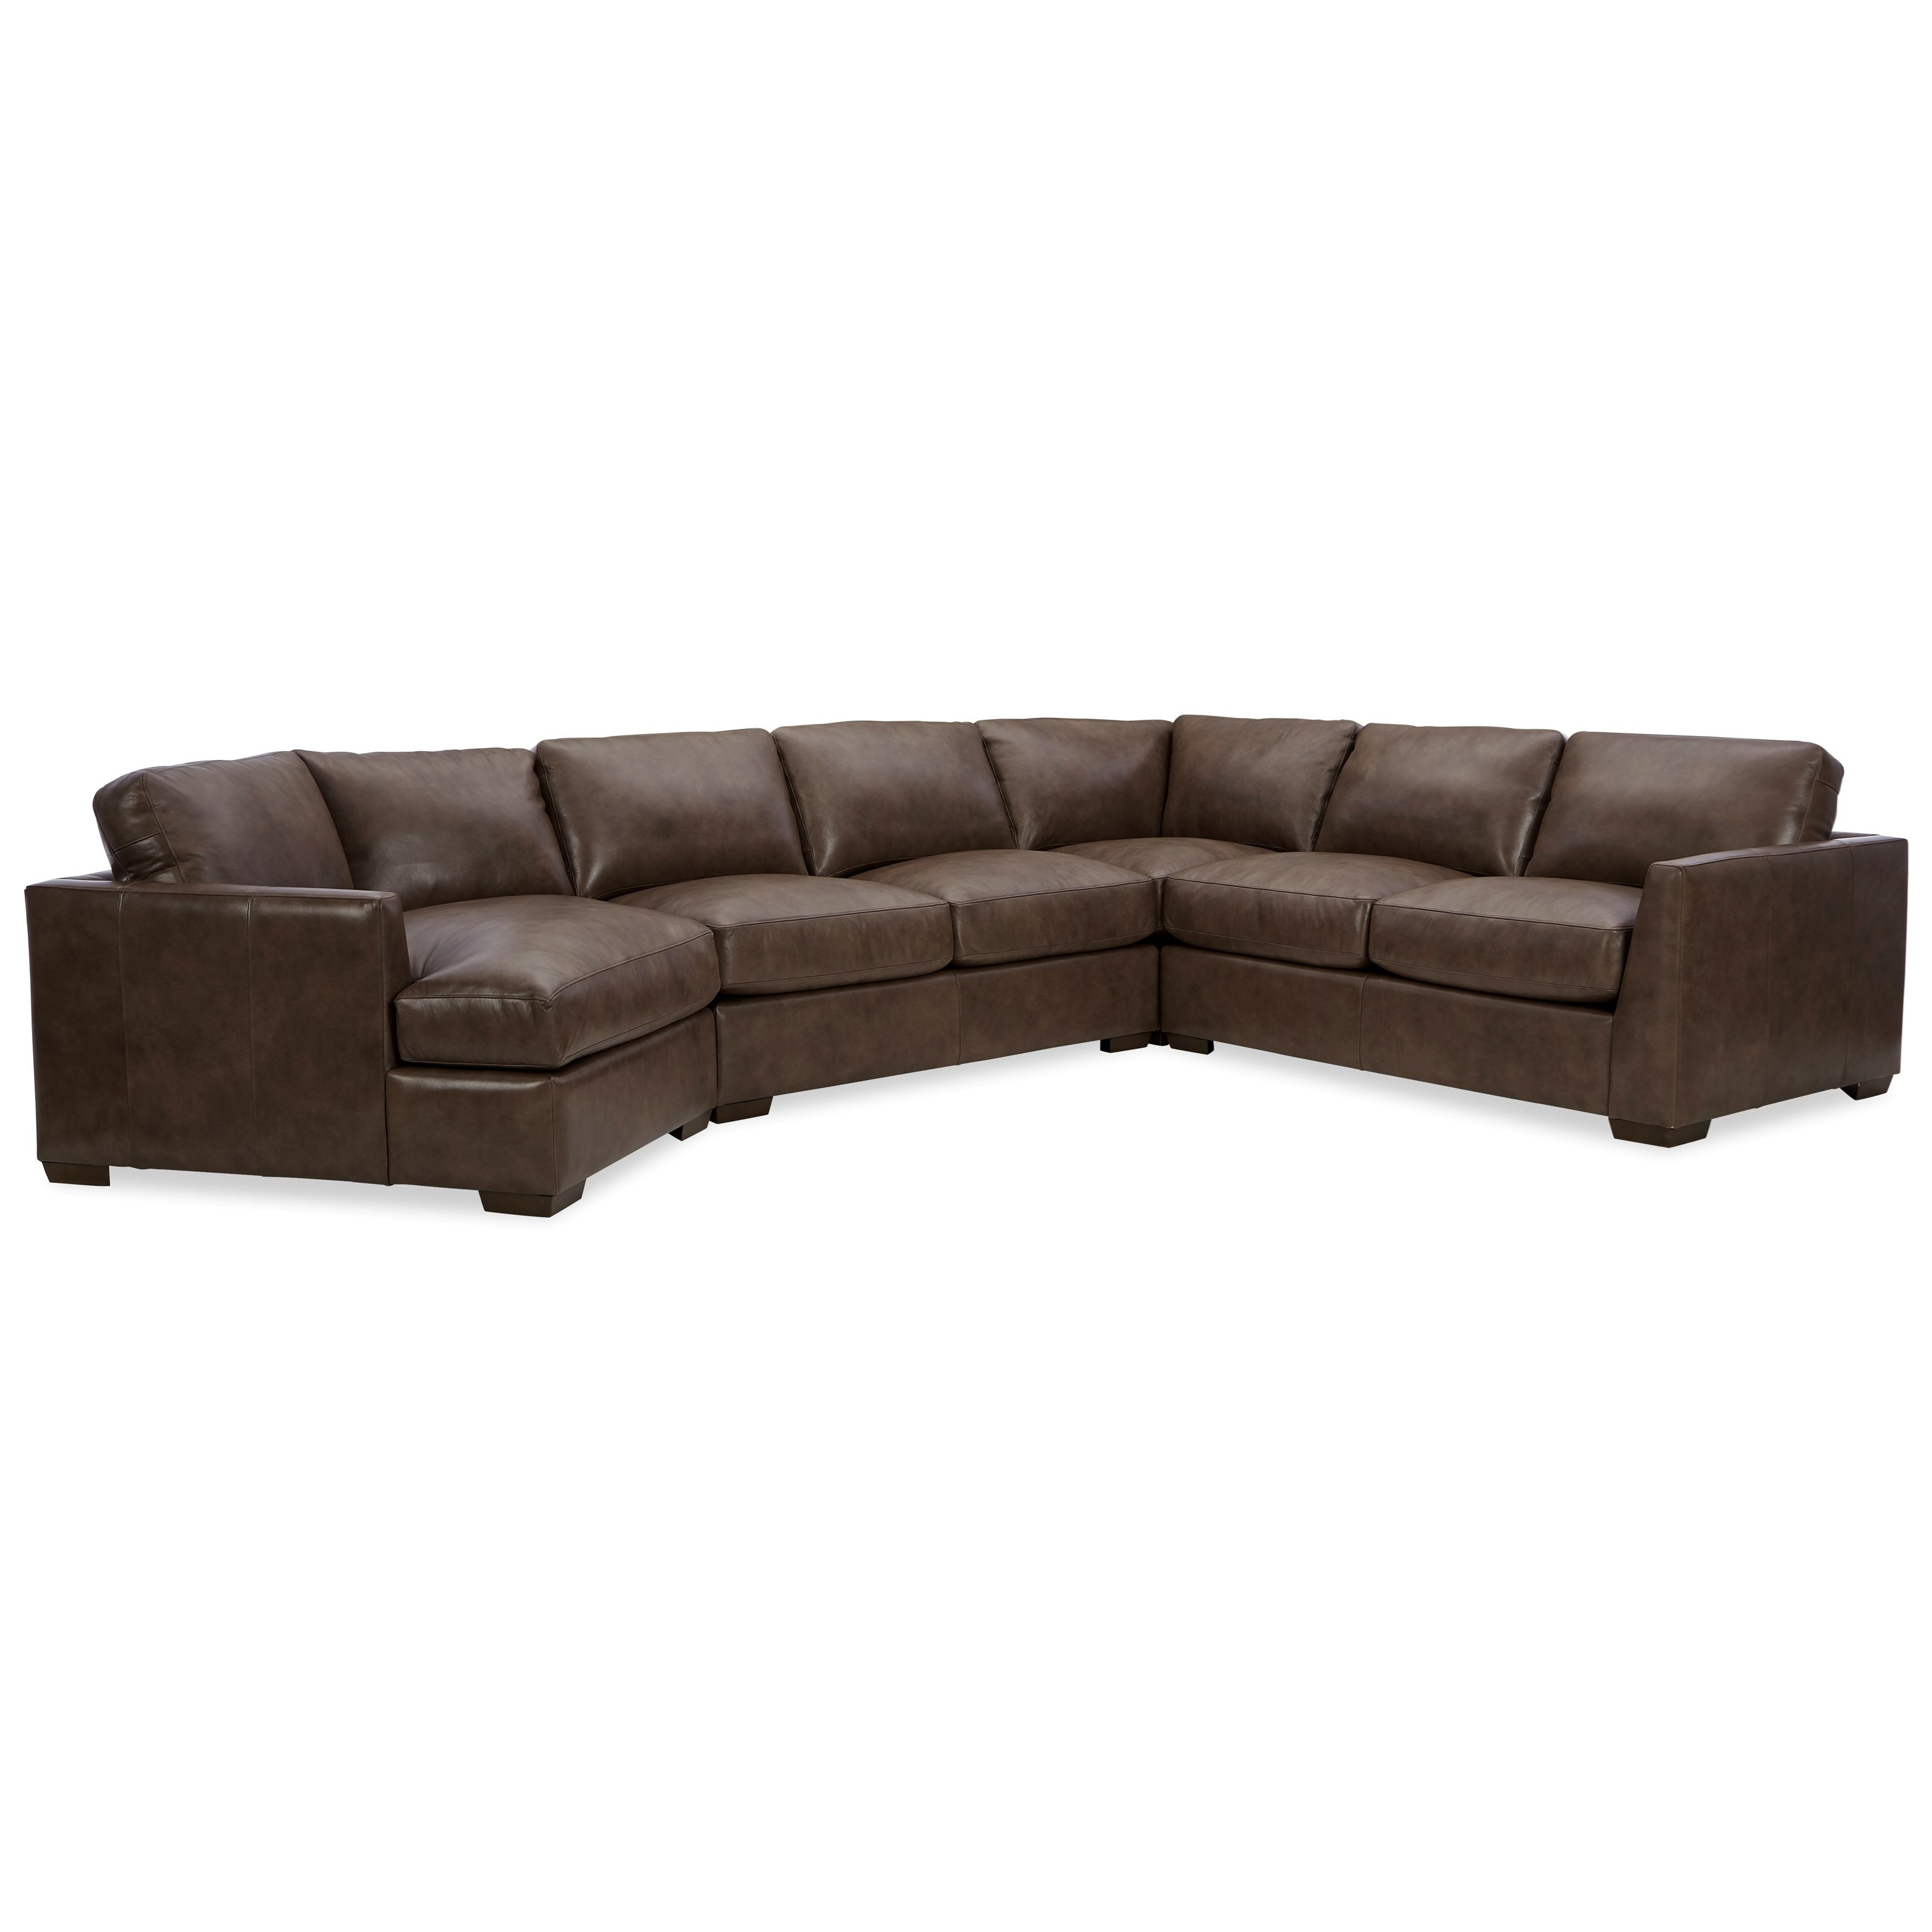 L783950 5-Seat Sectional Sofa with LAF Cuddler by Craftmaster at Baer's Furniture